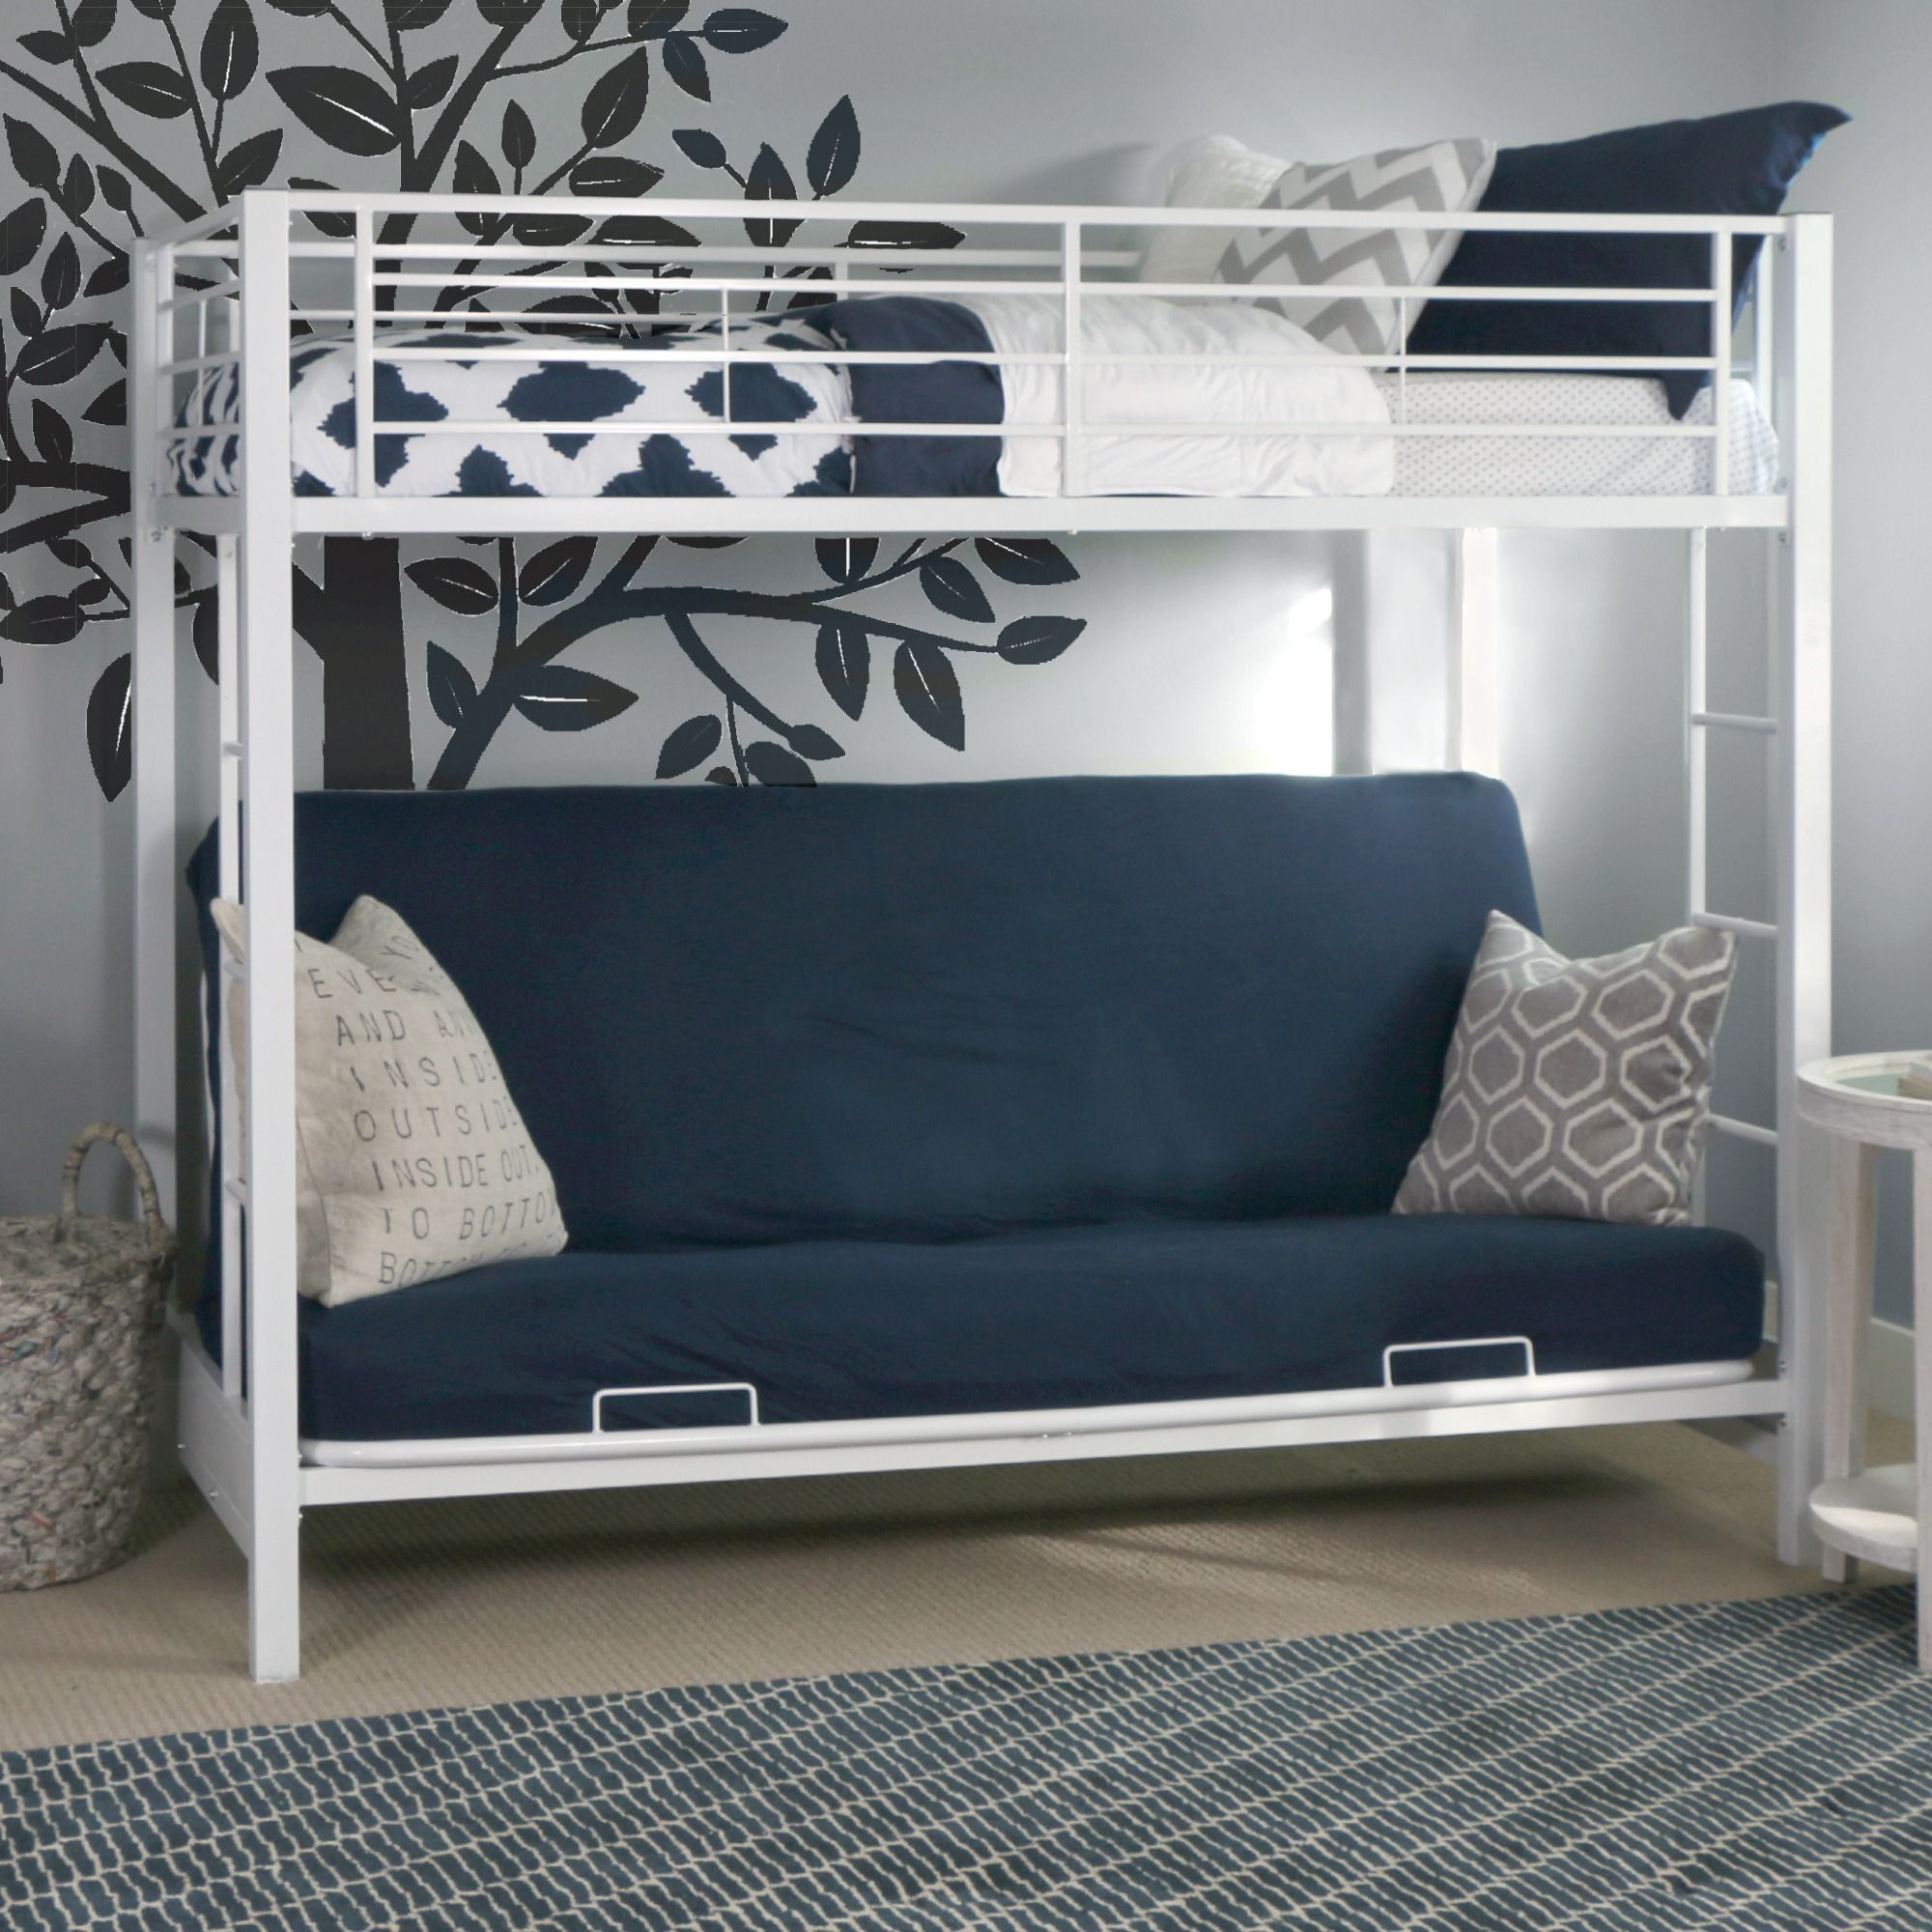 Beloved for its compact foot print this bunk bed is a necessity for